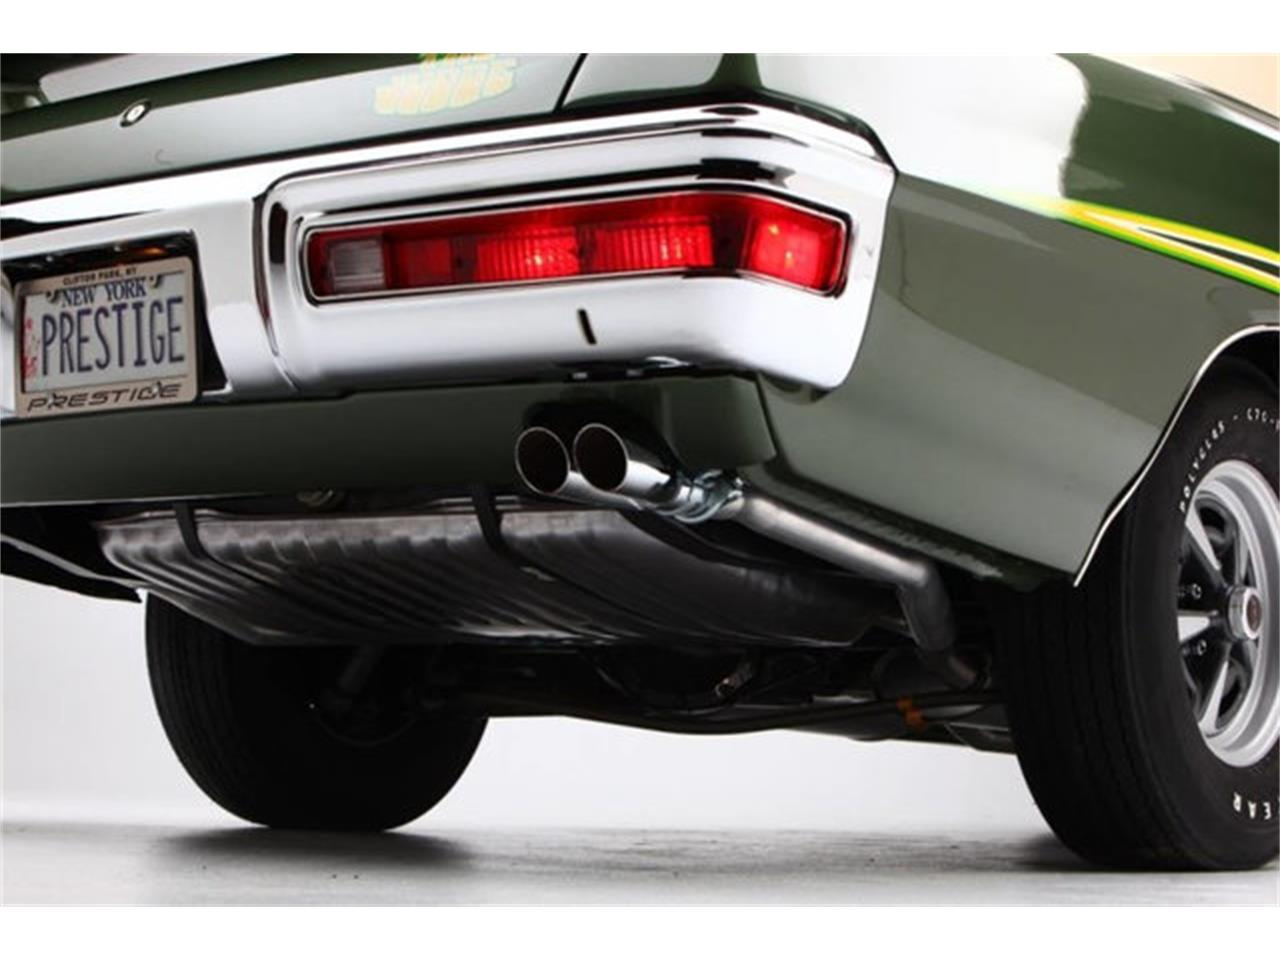 Large Picture of Classic '70 GTO (The Judge) - $219,000.00 - QDN8